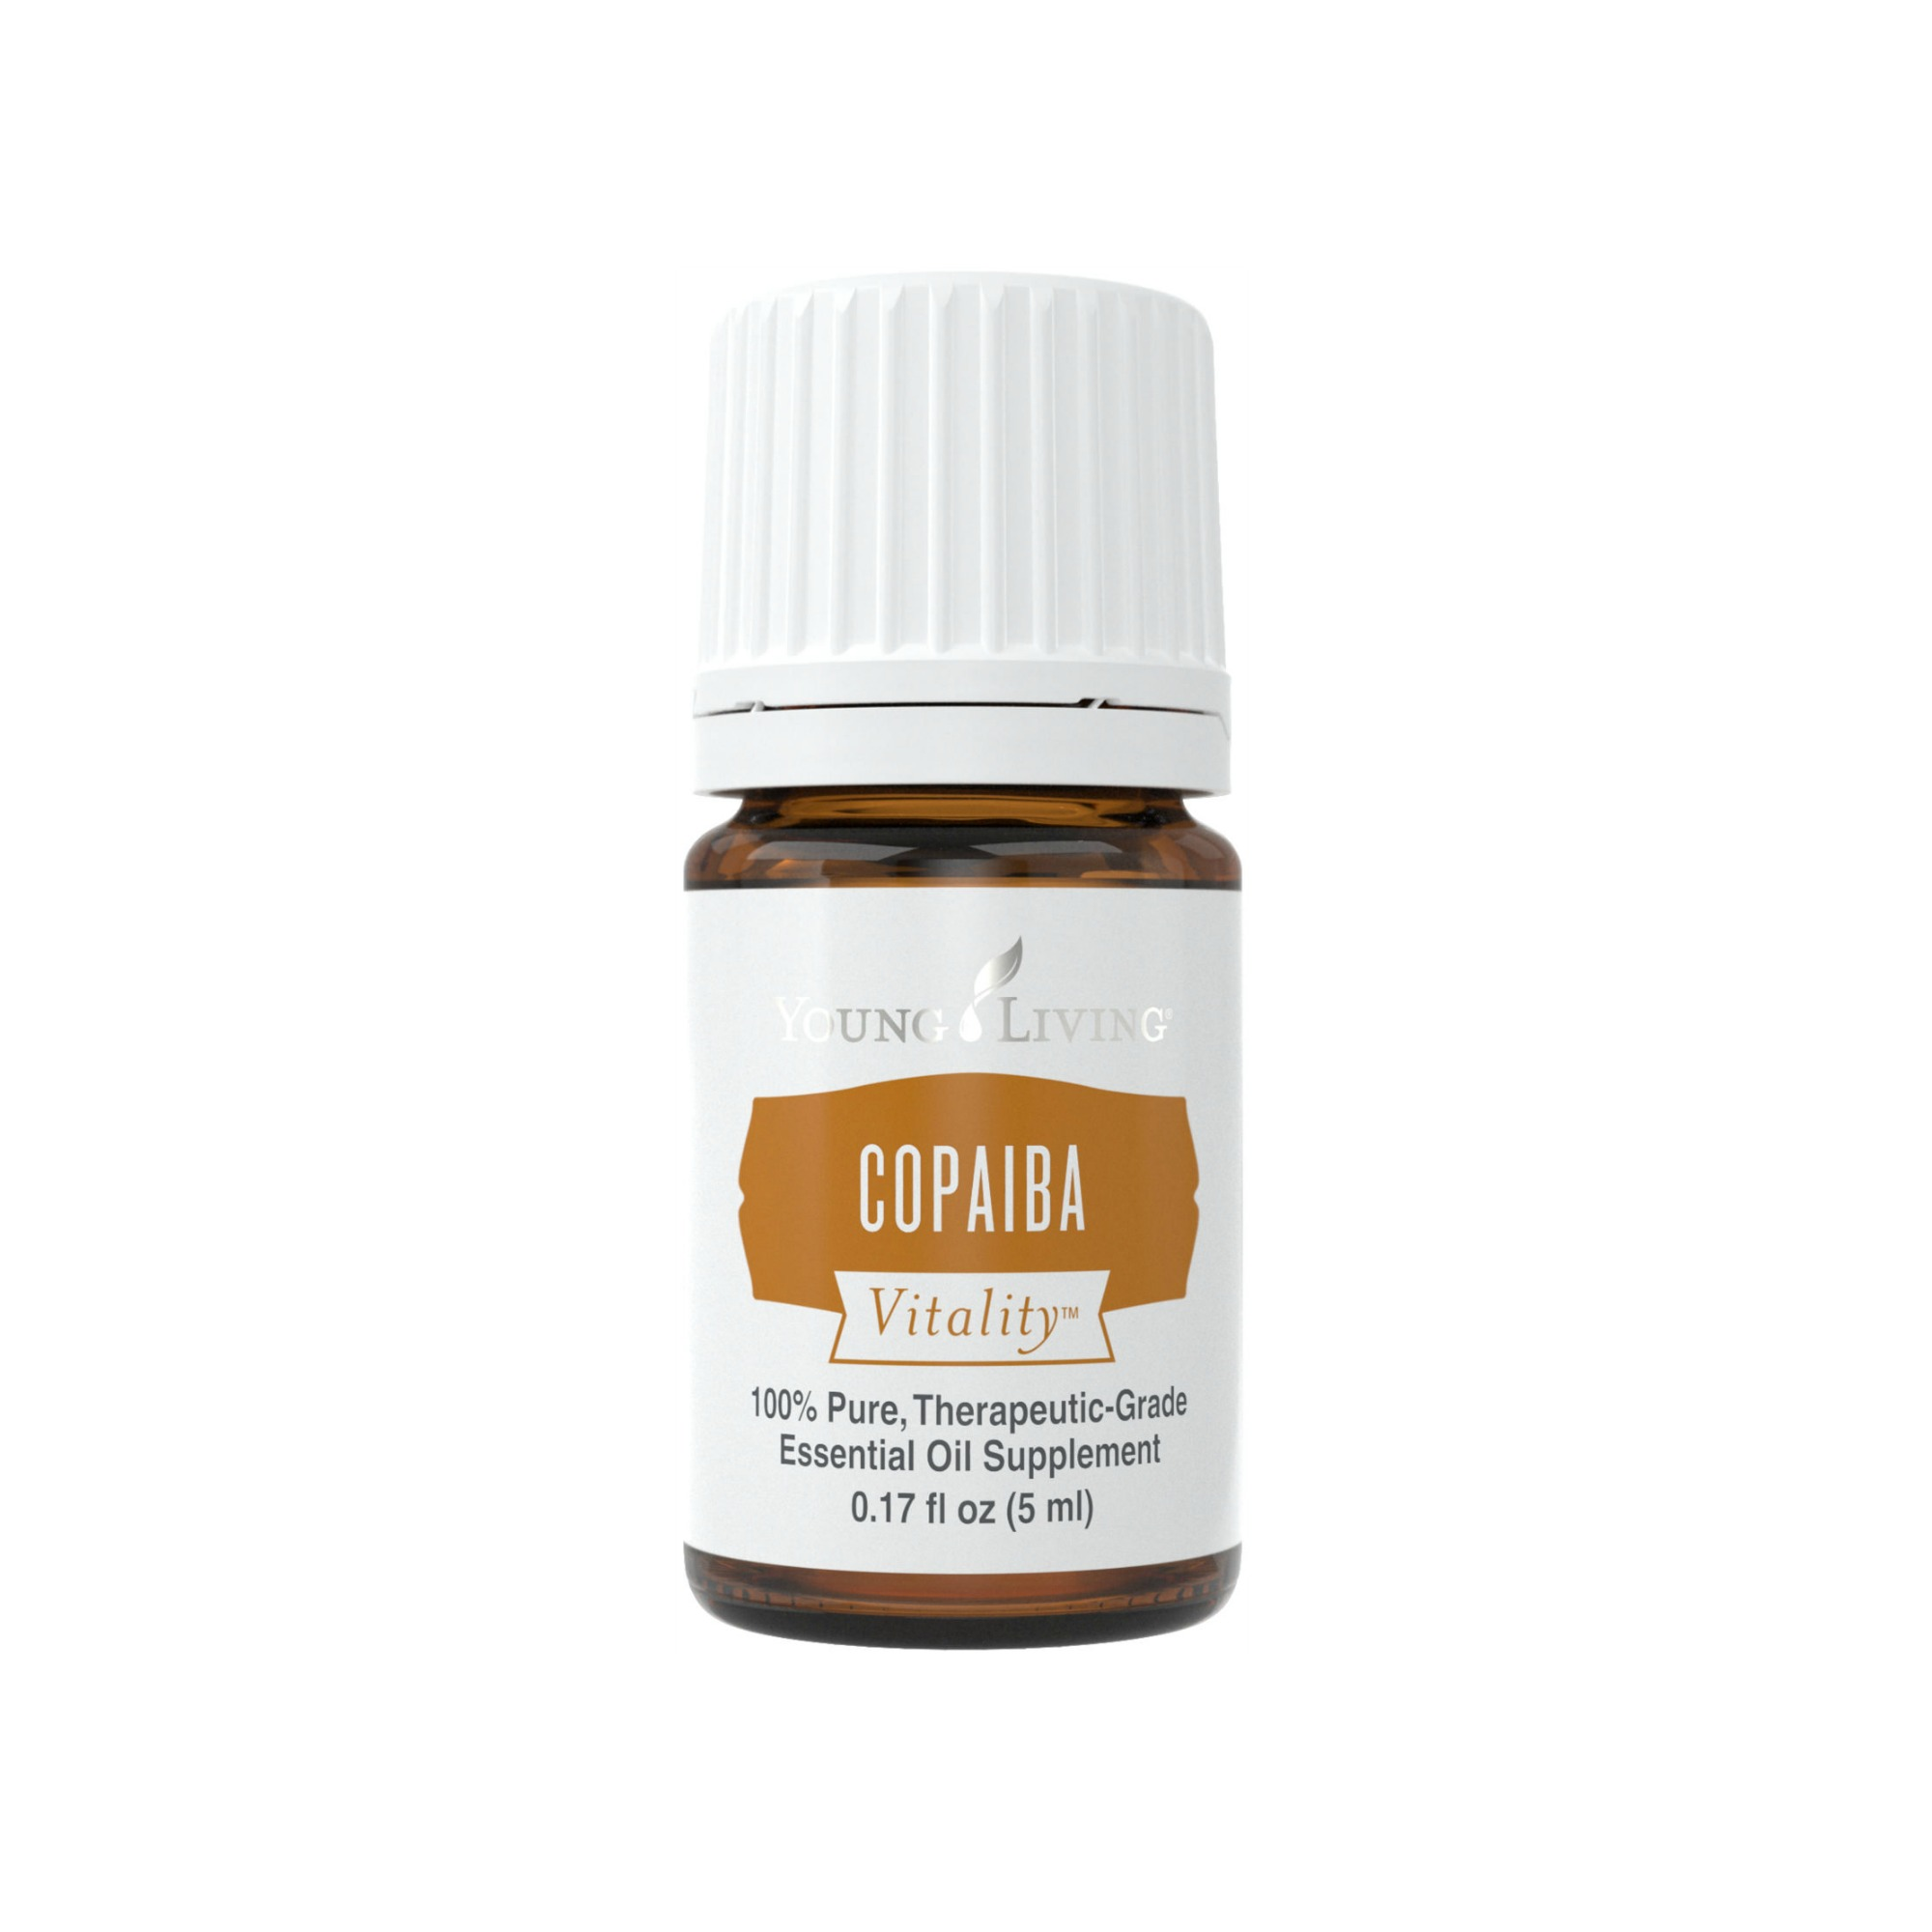 COPAIBA VITALITY    Steam distilled from the gum resin of the Brazilian copaiba tree, Copaiba Vitality™ essential oil has a robust, earthy flavor with notes of honey. When taken internally, it can promote overall wellness and may be an important part of a daily health regimen. Add a few drops of Copaiba Vitality to a cup of herbal tea to enjoy its wellness benefits and a relaxing moment.   Click here   to learn more about this product.